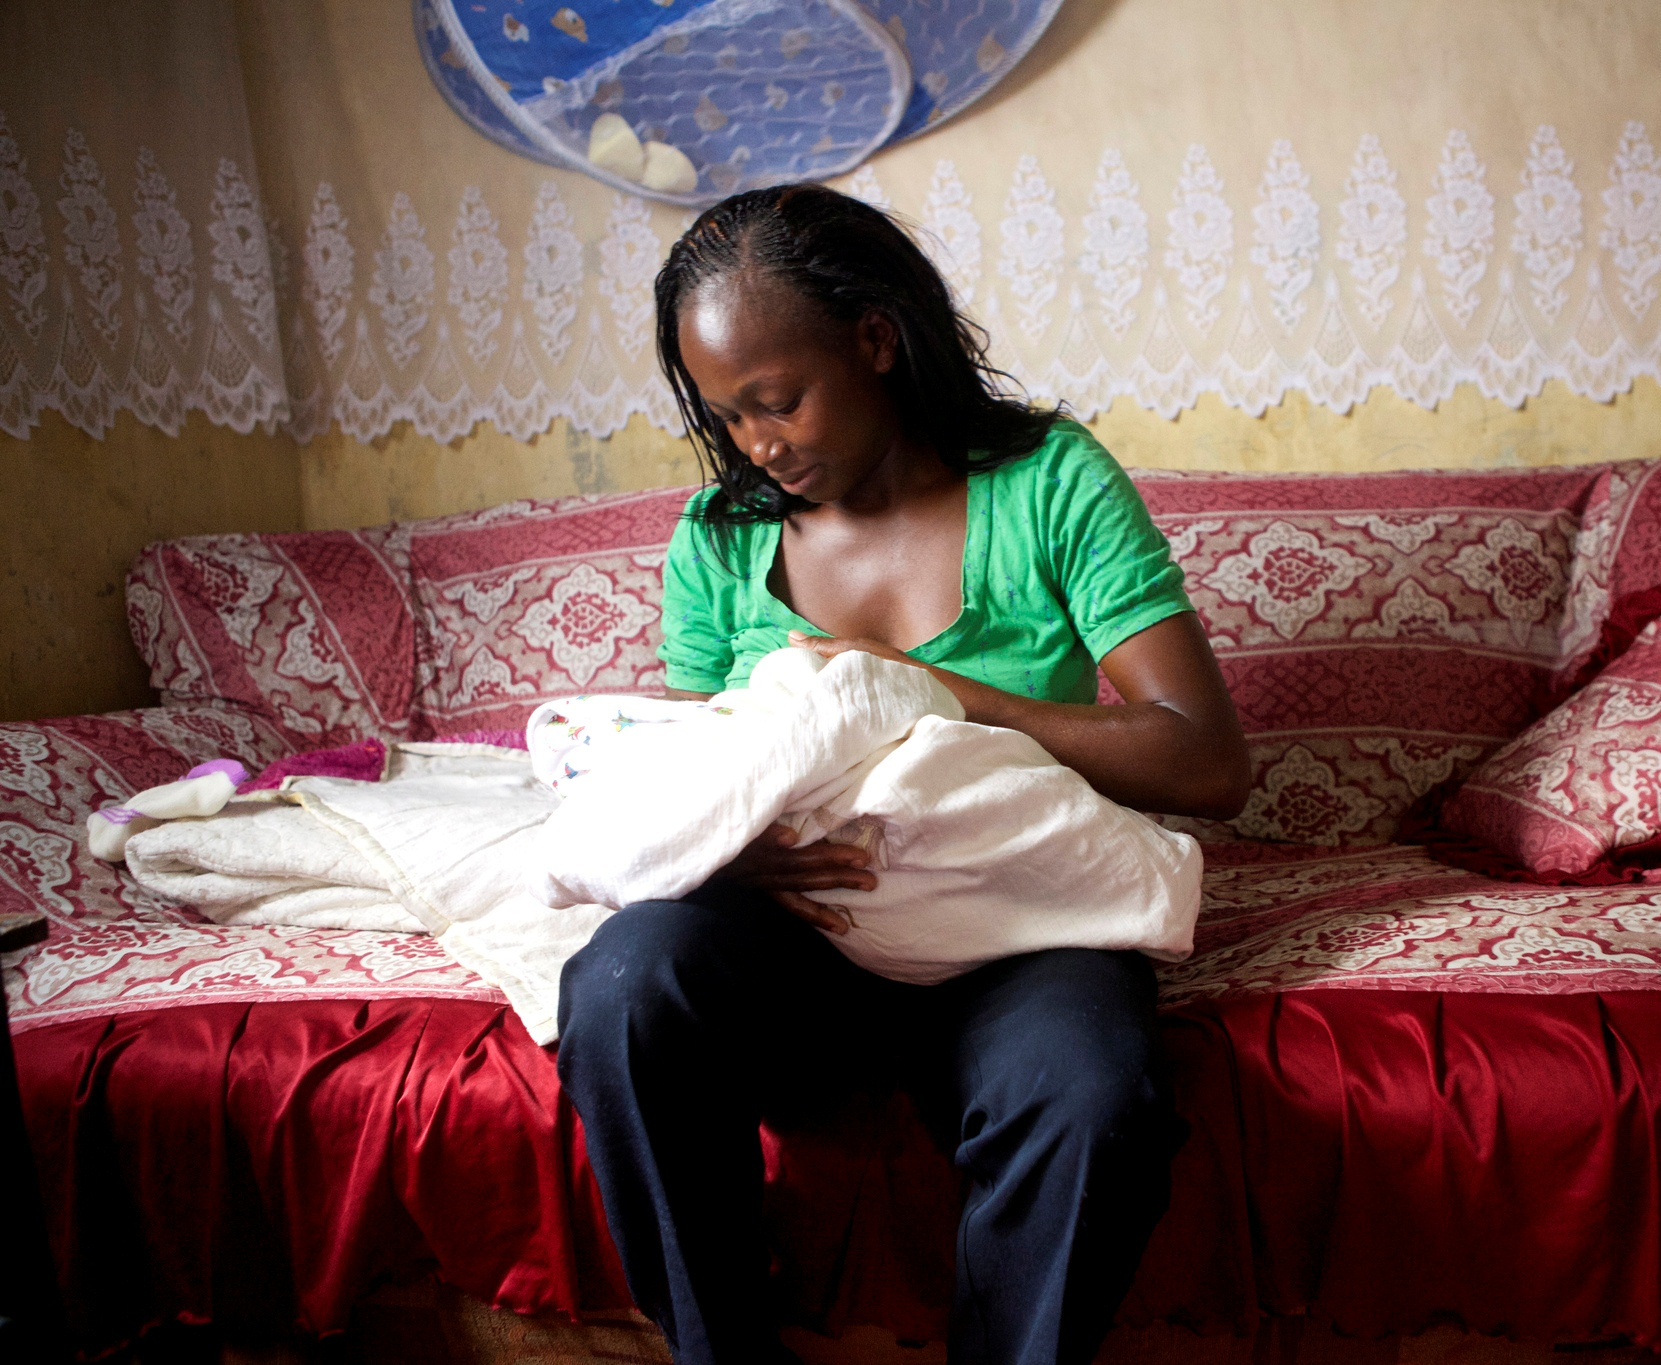 Lillian Kambura holds her newborn son, Paul, in her home in Mwiki, Kenya, as she waits for her three-day postpartum home visit.